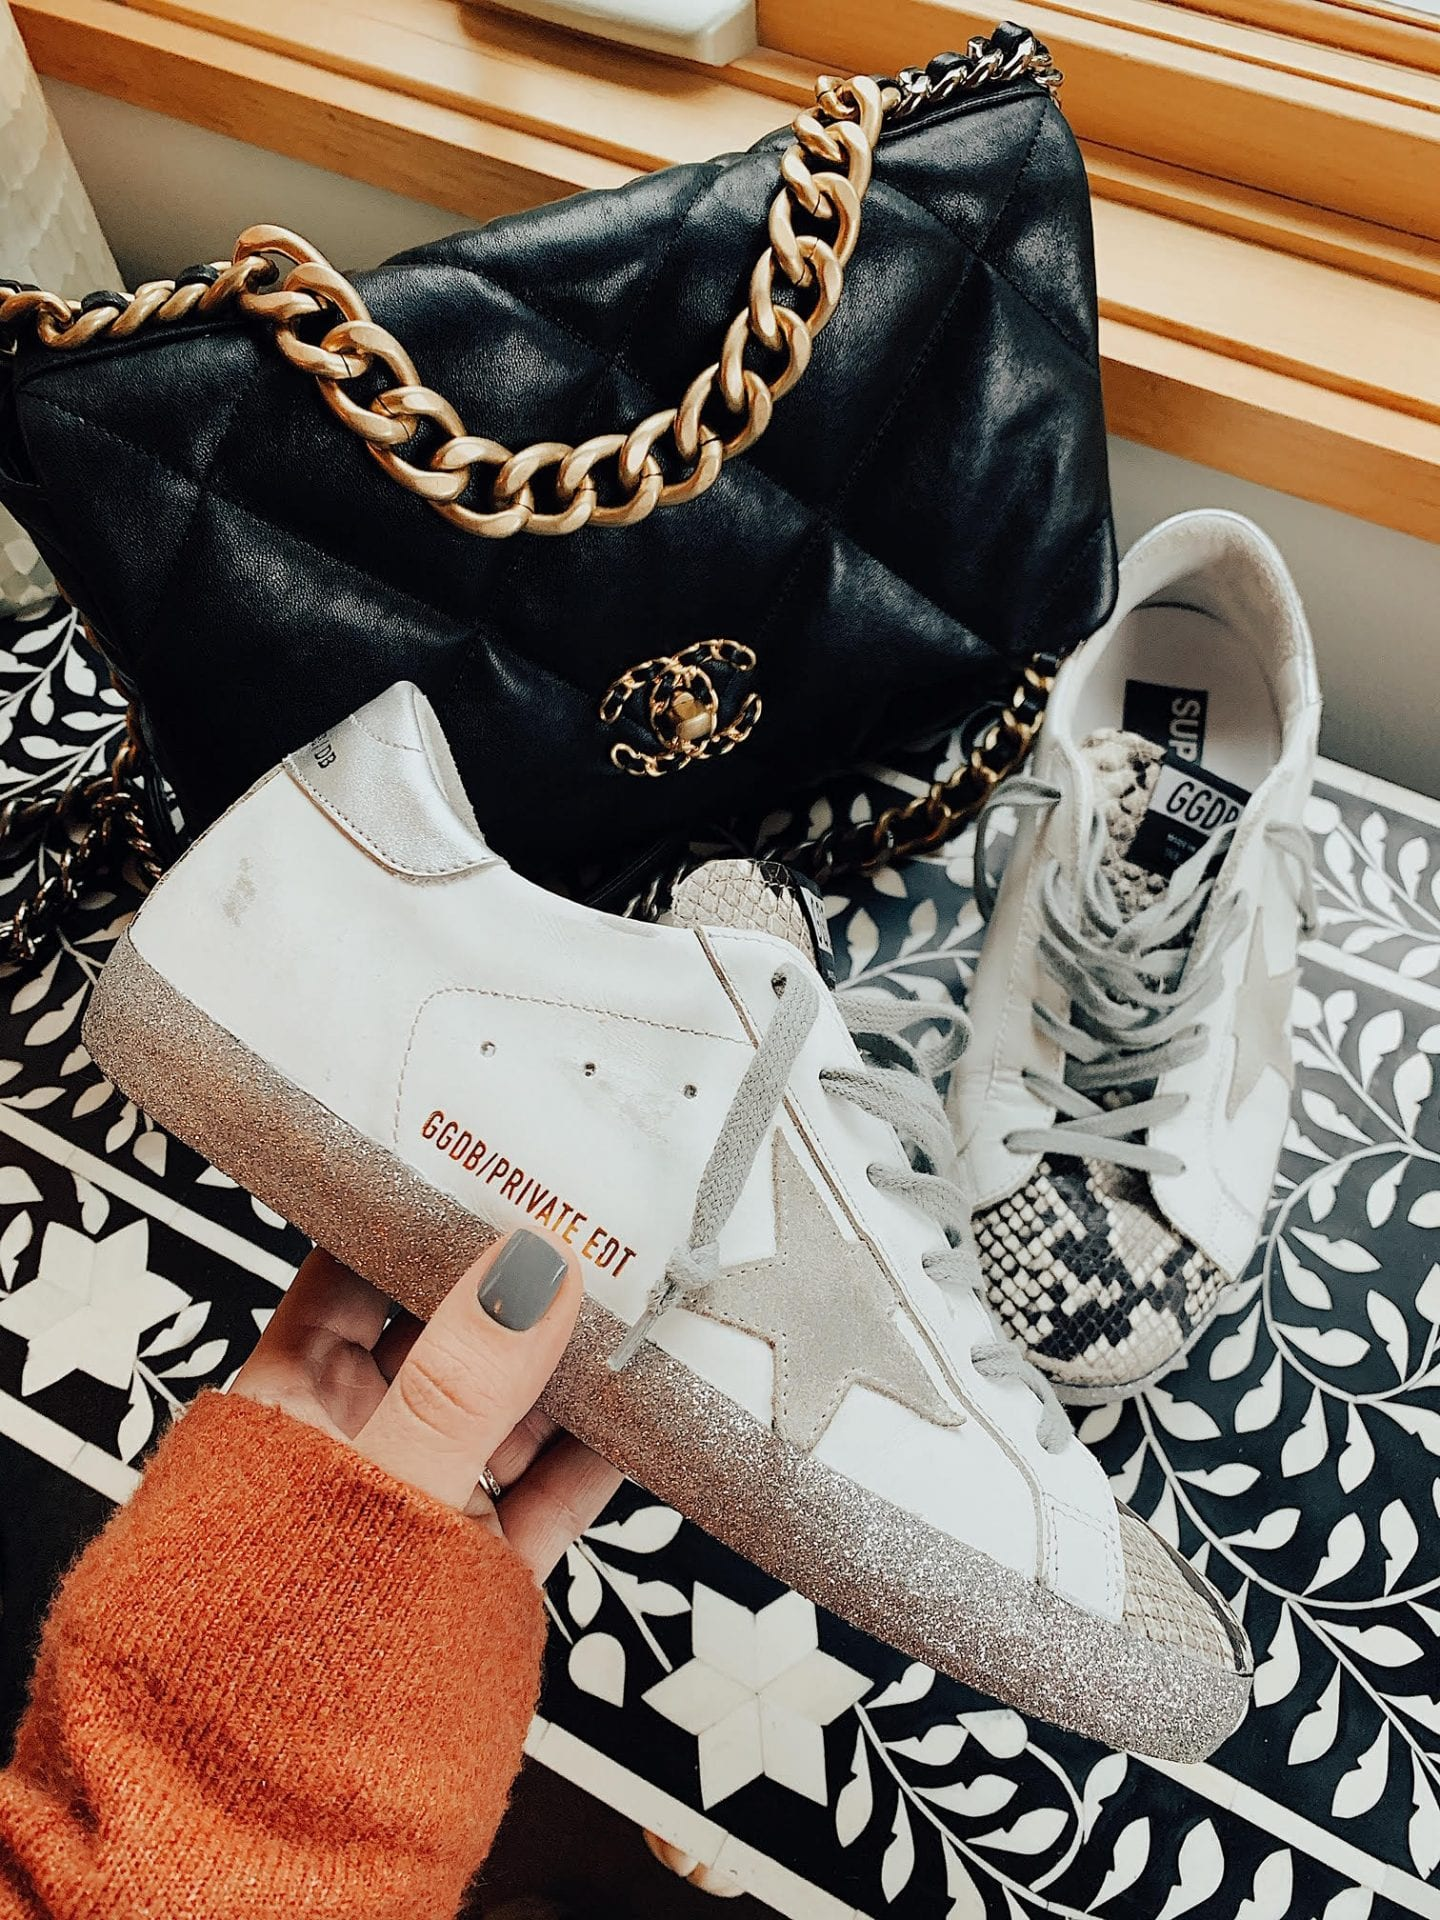 Golden Goose sneakers | Golden Goose Sneakers on Sale by popular San Francisco fashion blog, Just Add Glam: image of a woman holding a golden goose private edition sneaker.